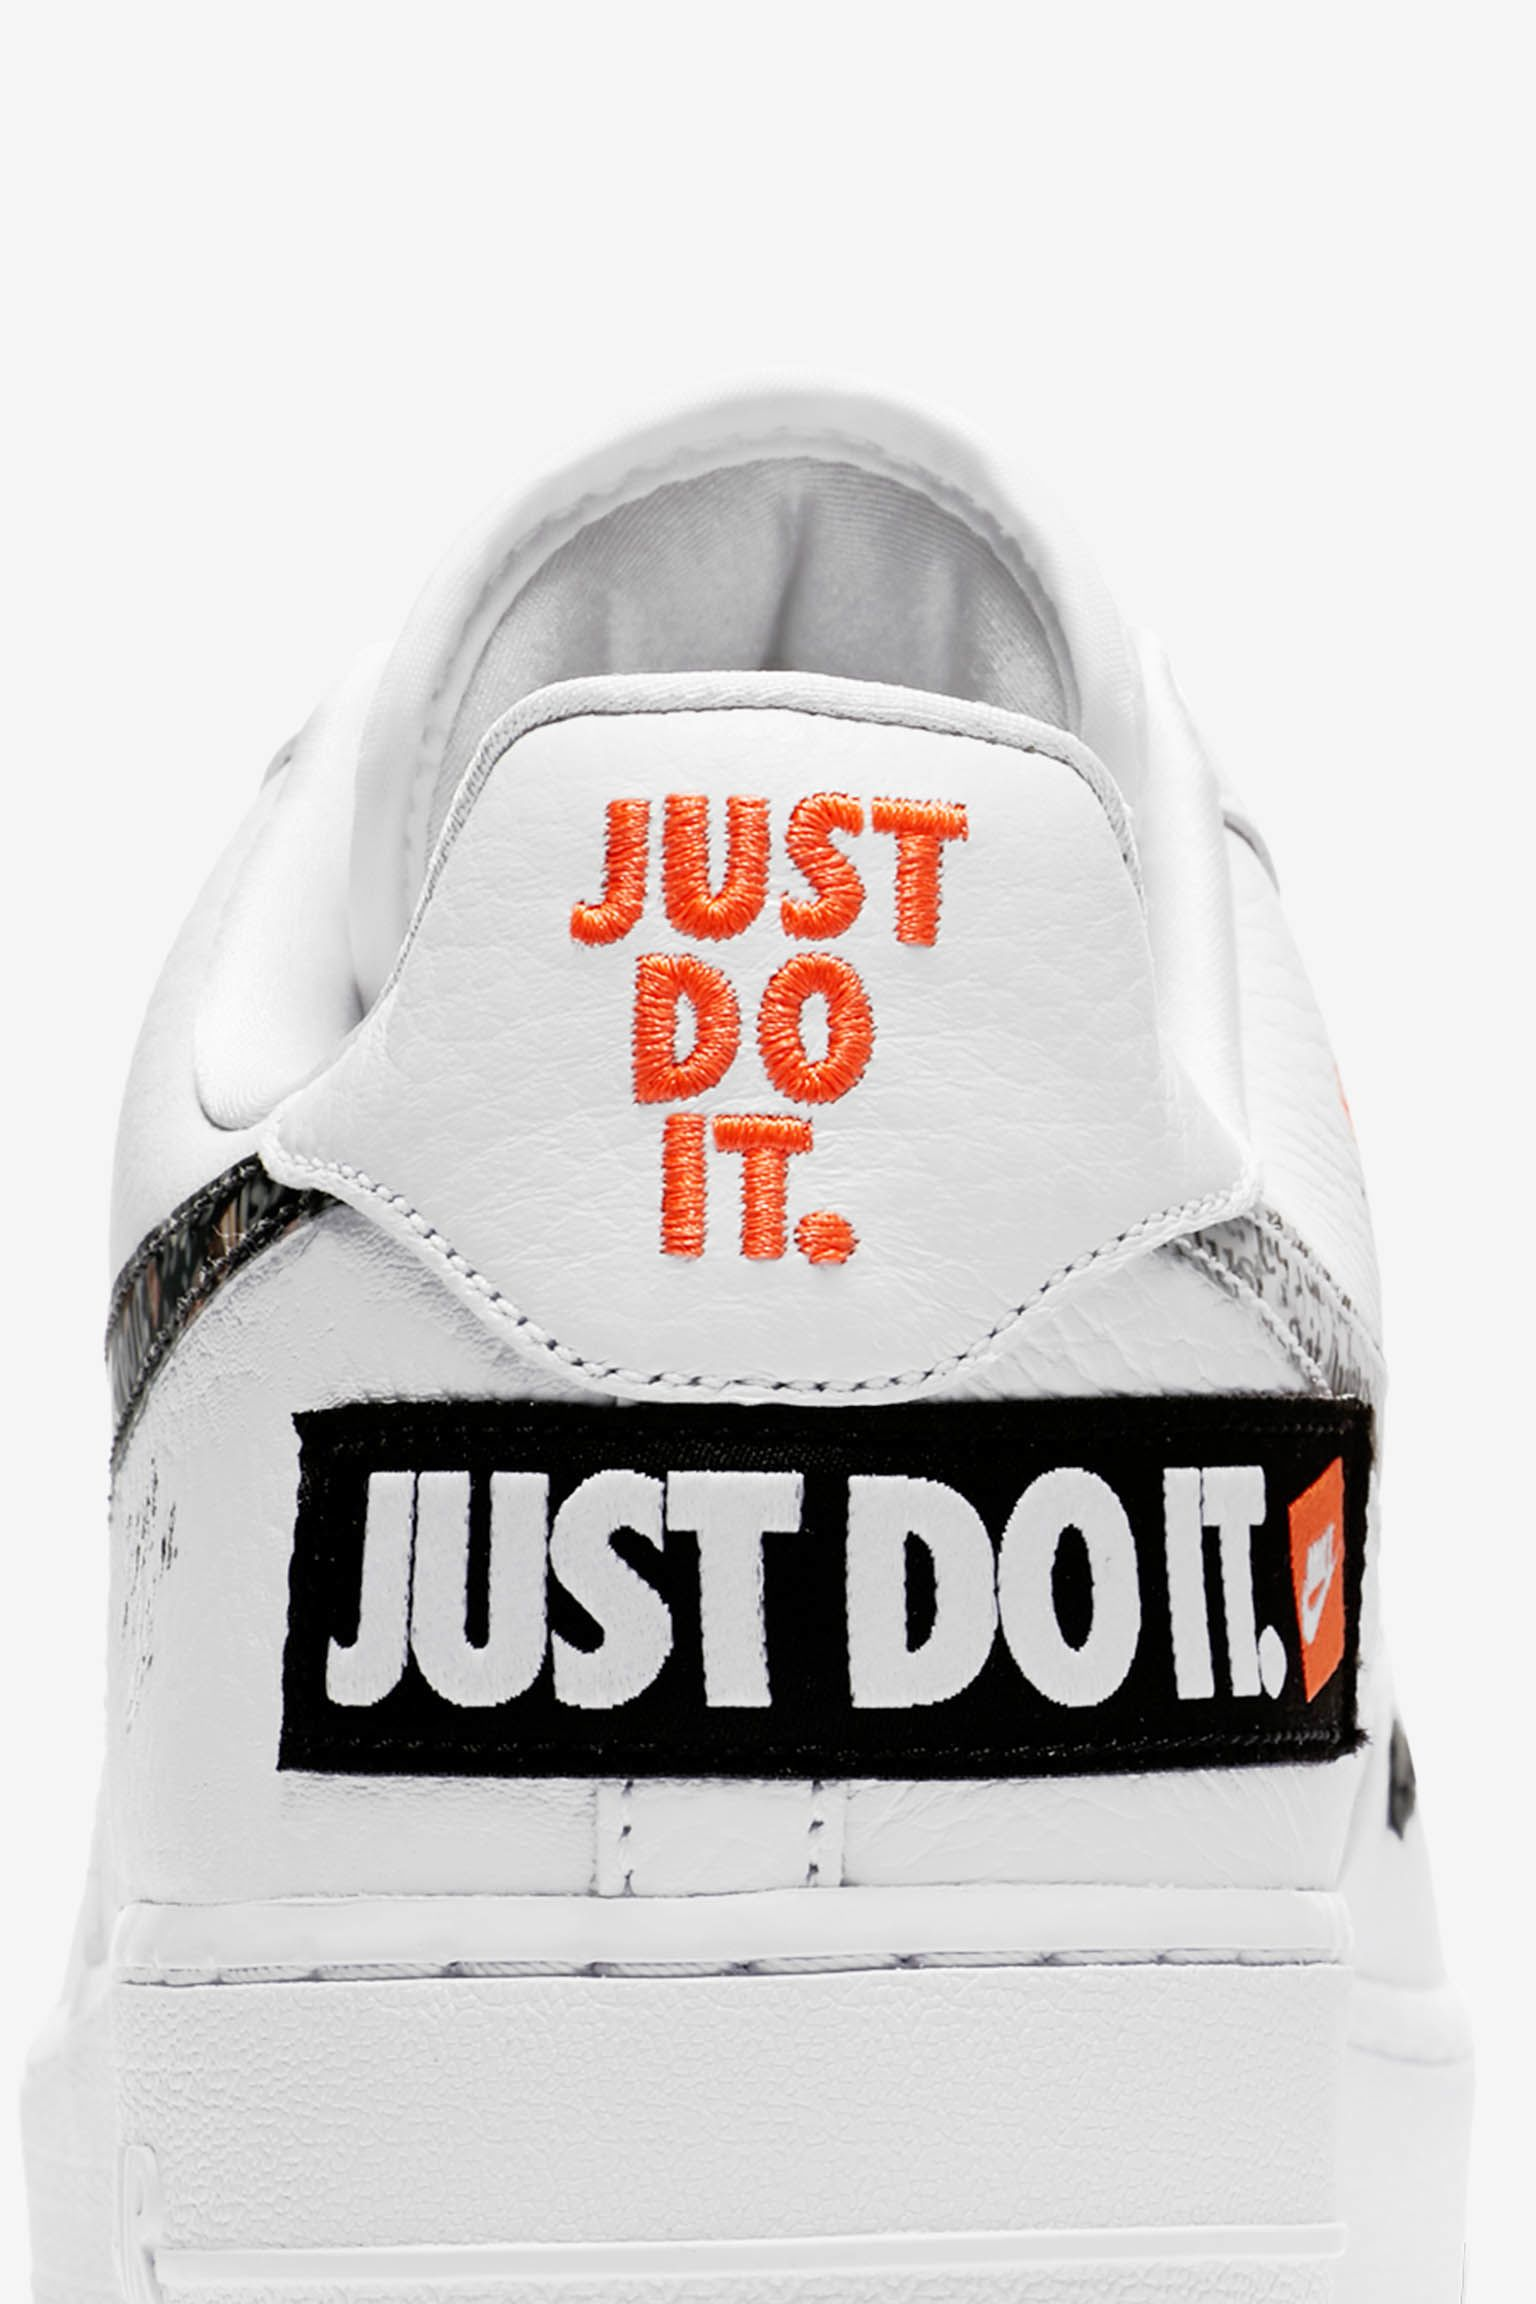 Just Do It Wallpaper: Nike Air Force 1 Premium Just Do It Collection 'White